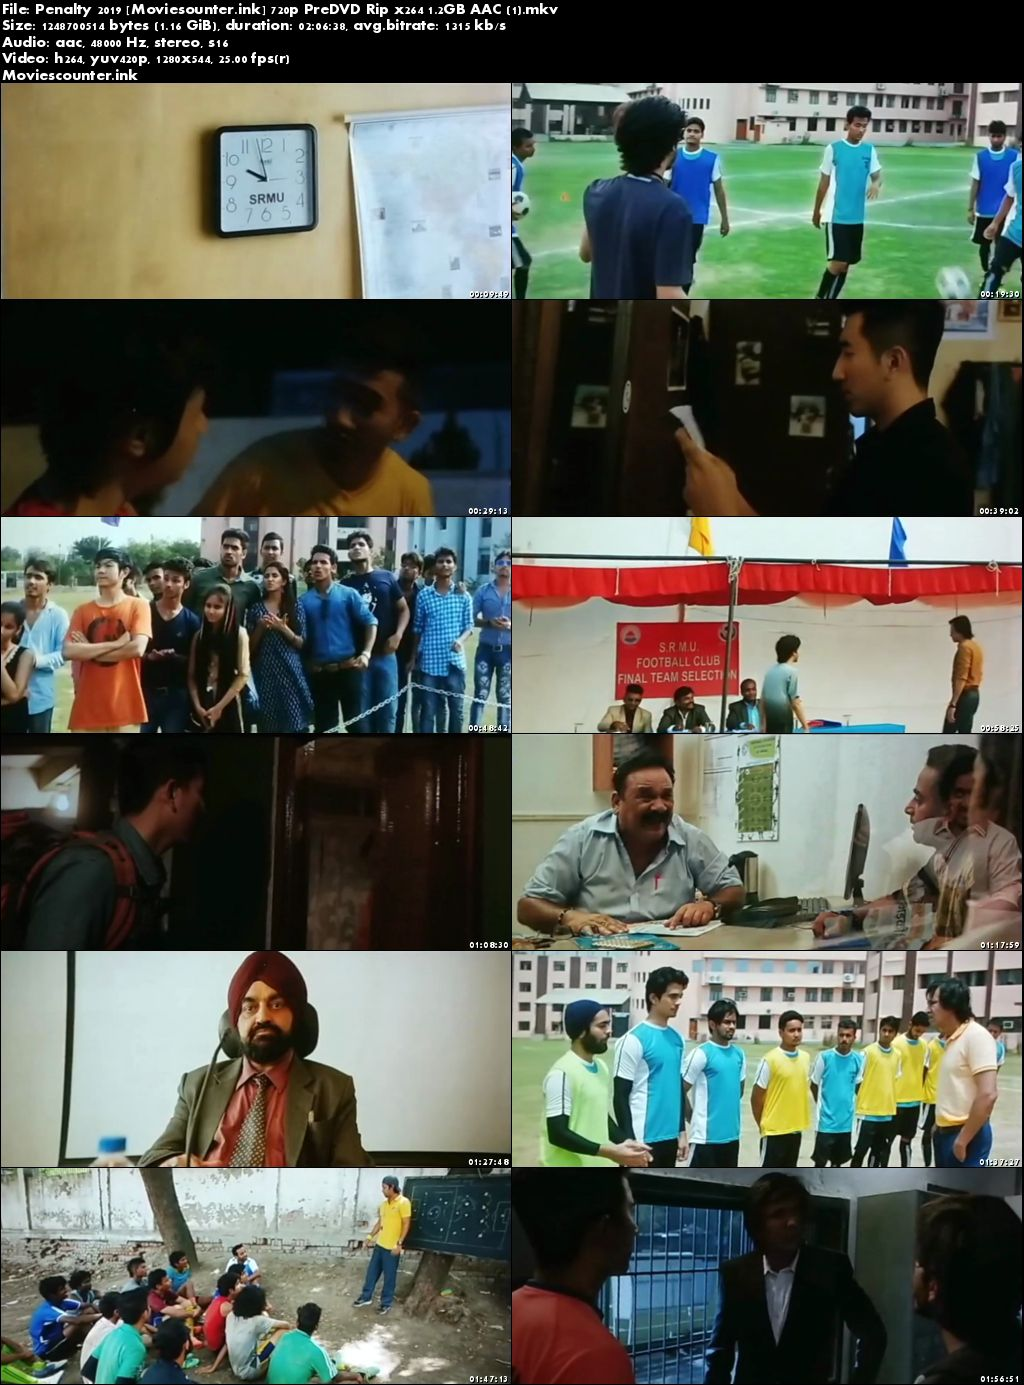 Screen Shots Penalty full movie download in 720p hd 2019